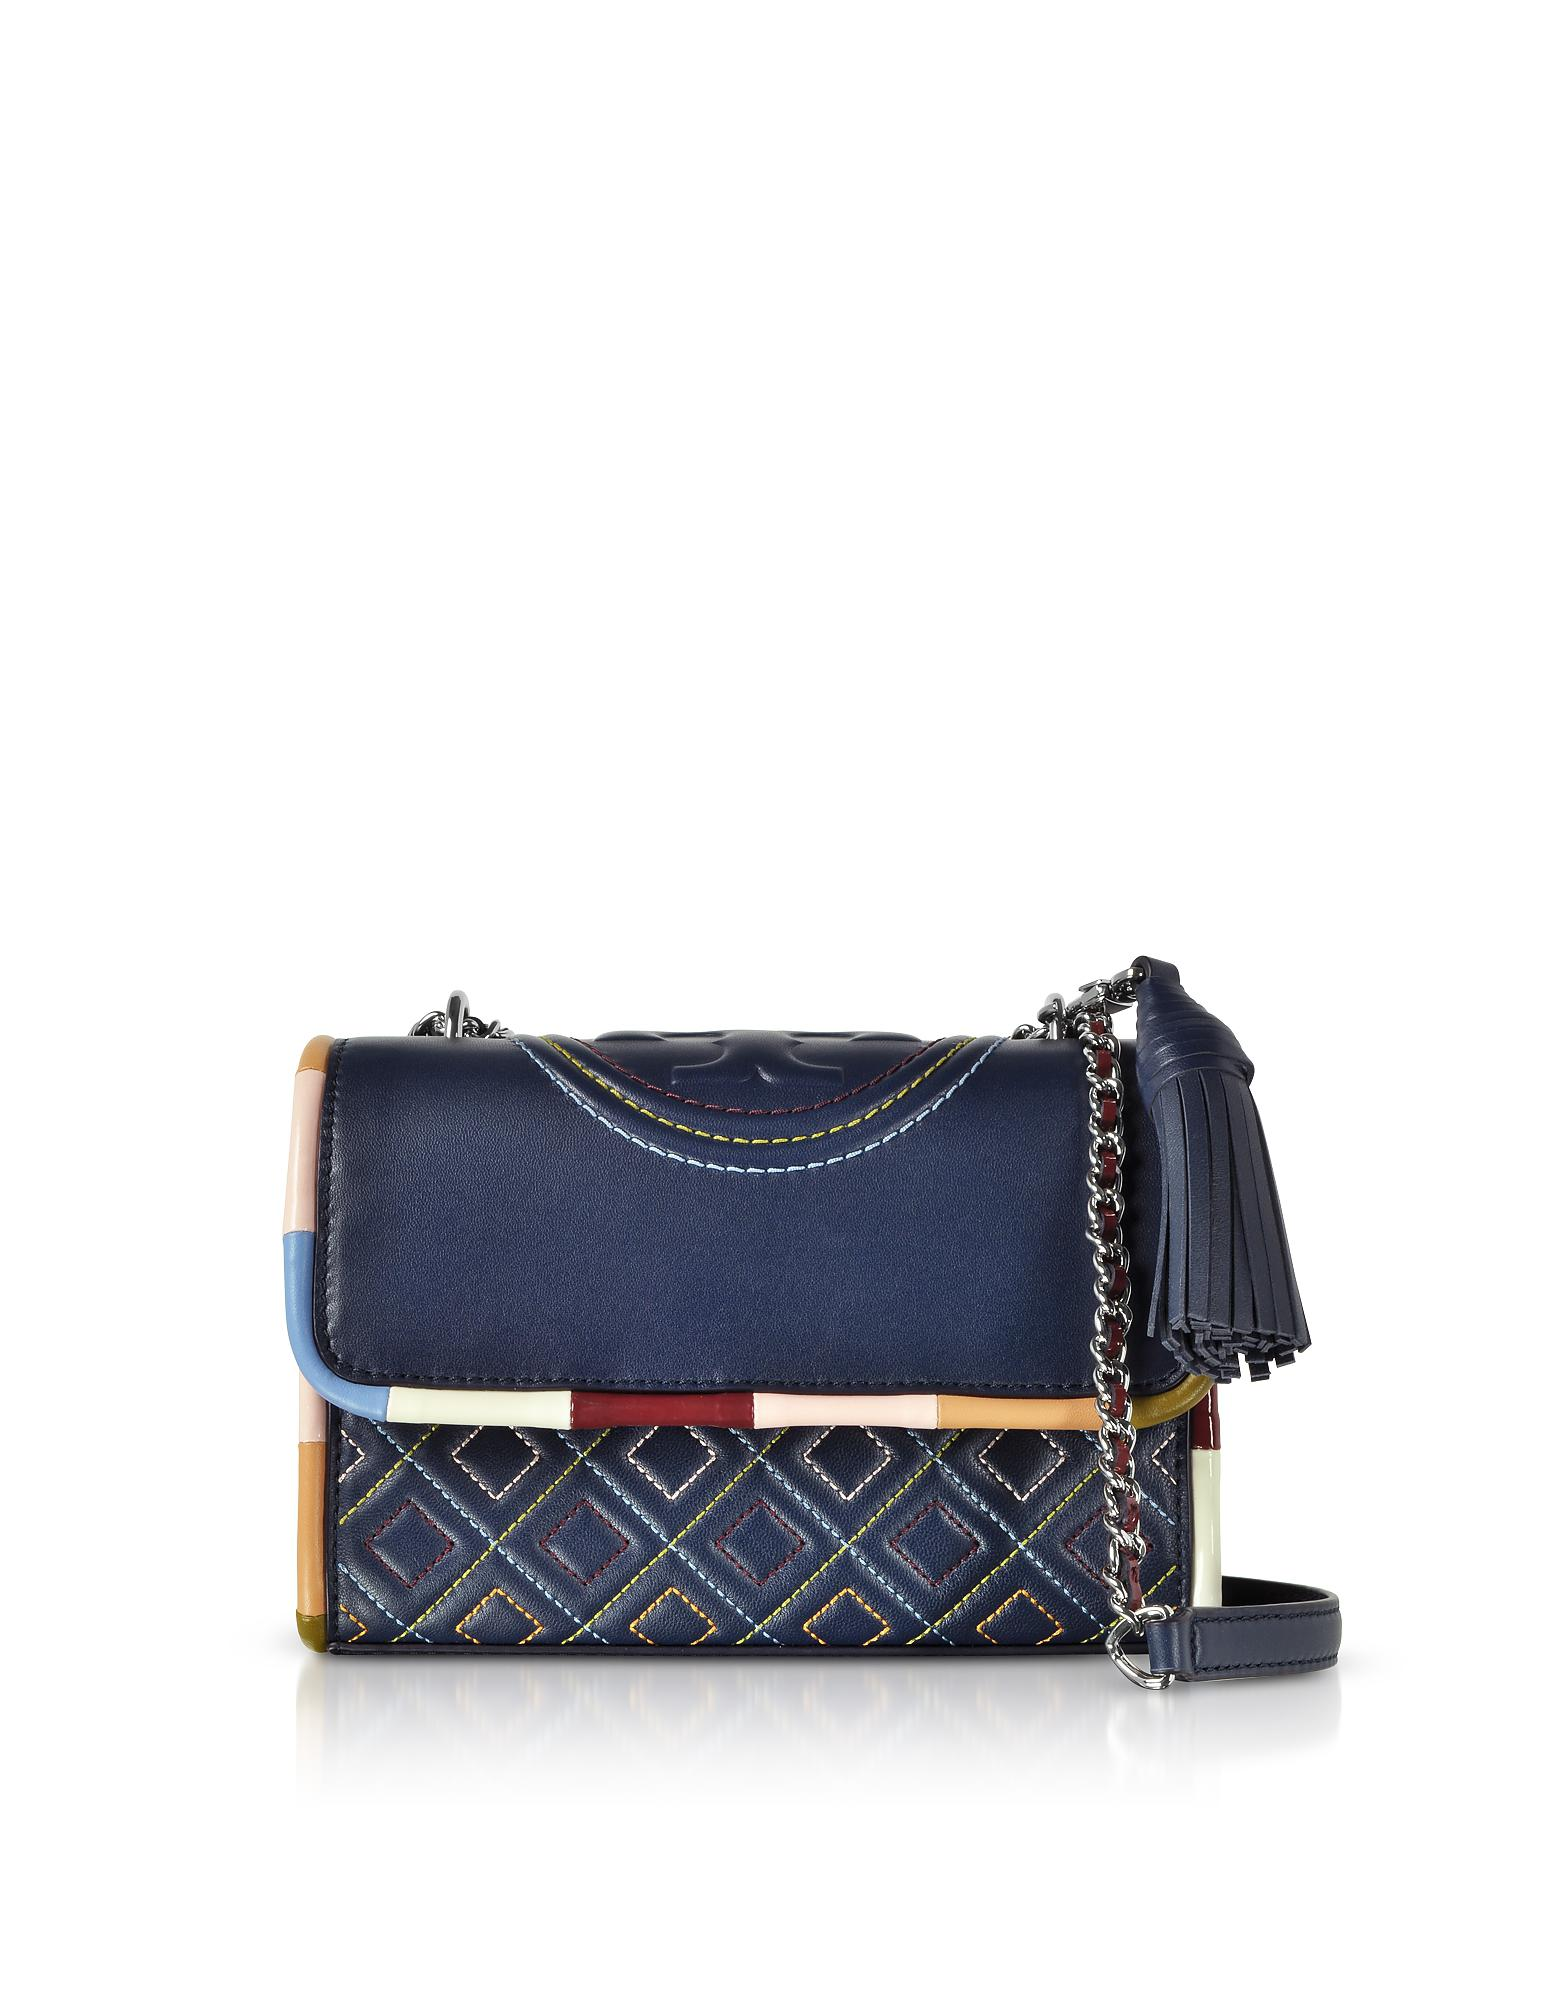 acf433592f6 Tory Burch Navy Blue W/multicolor Piping Fleming Small Shoulder Bag ...